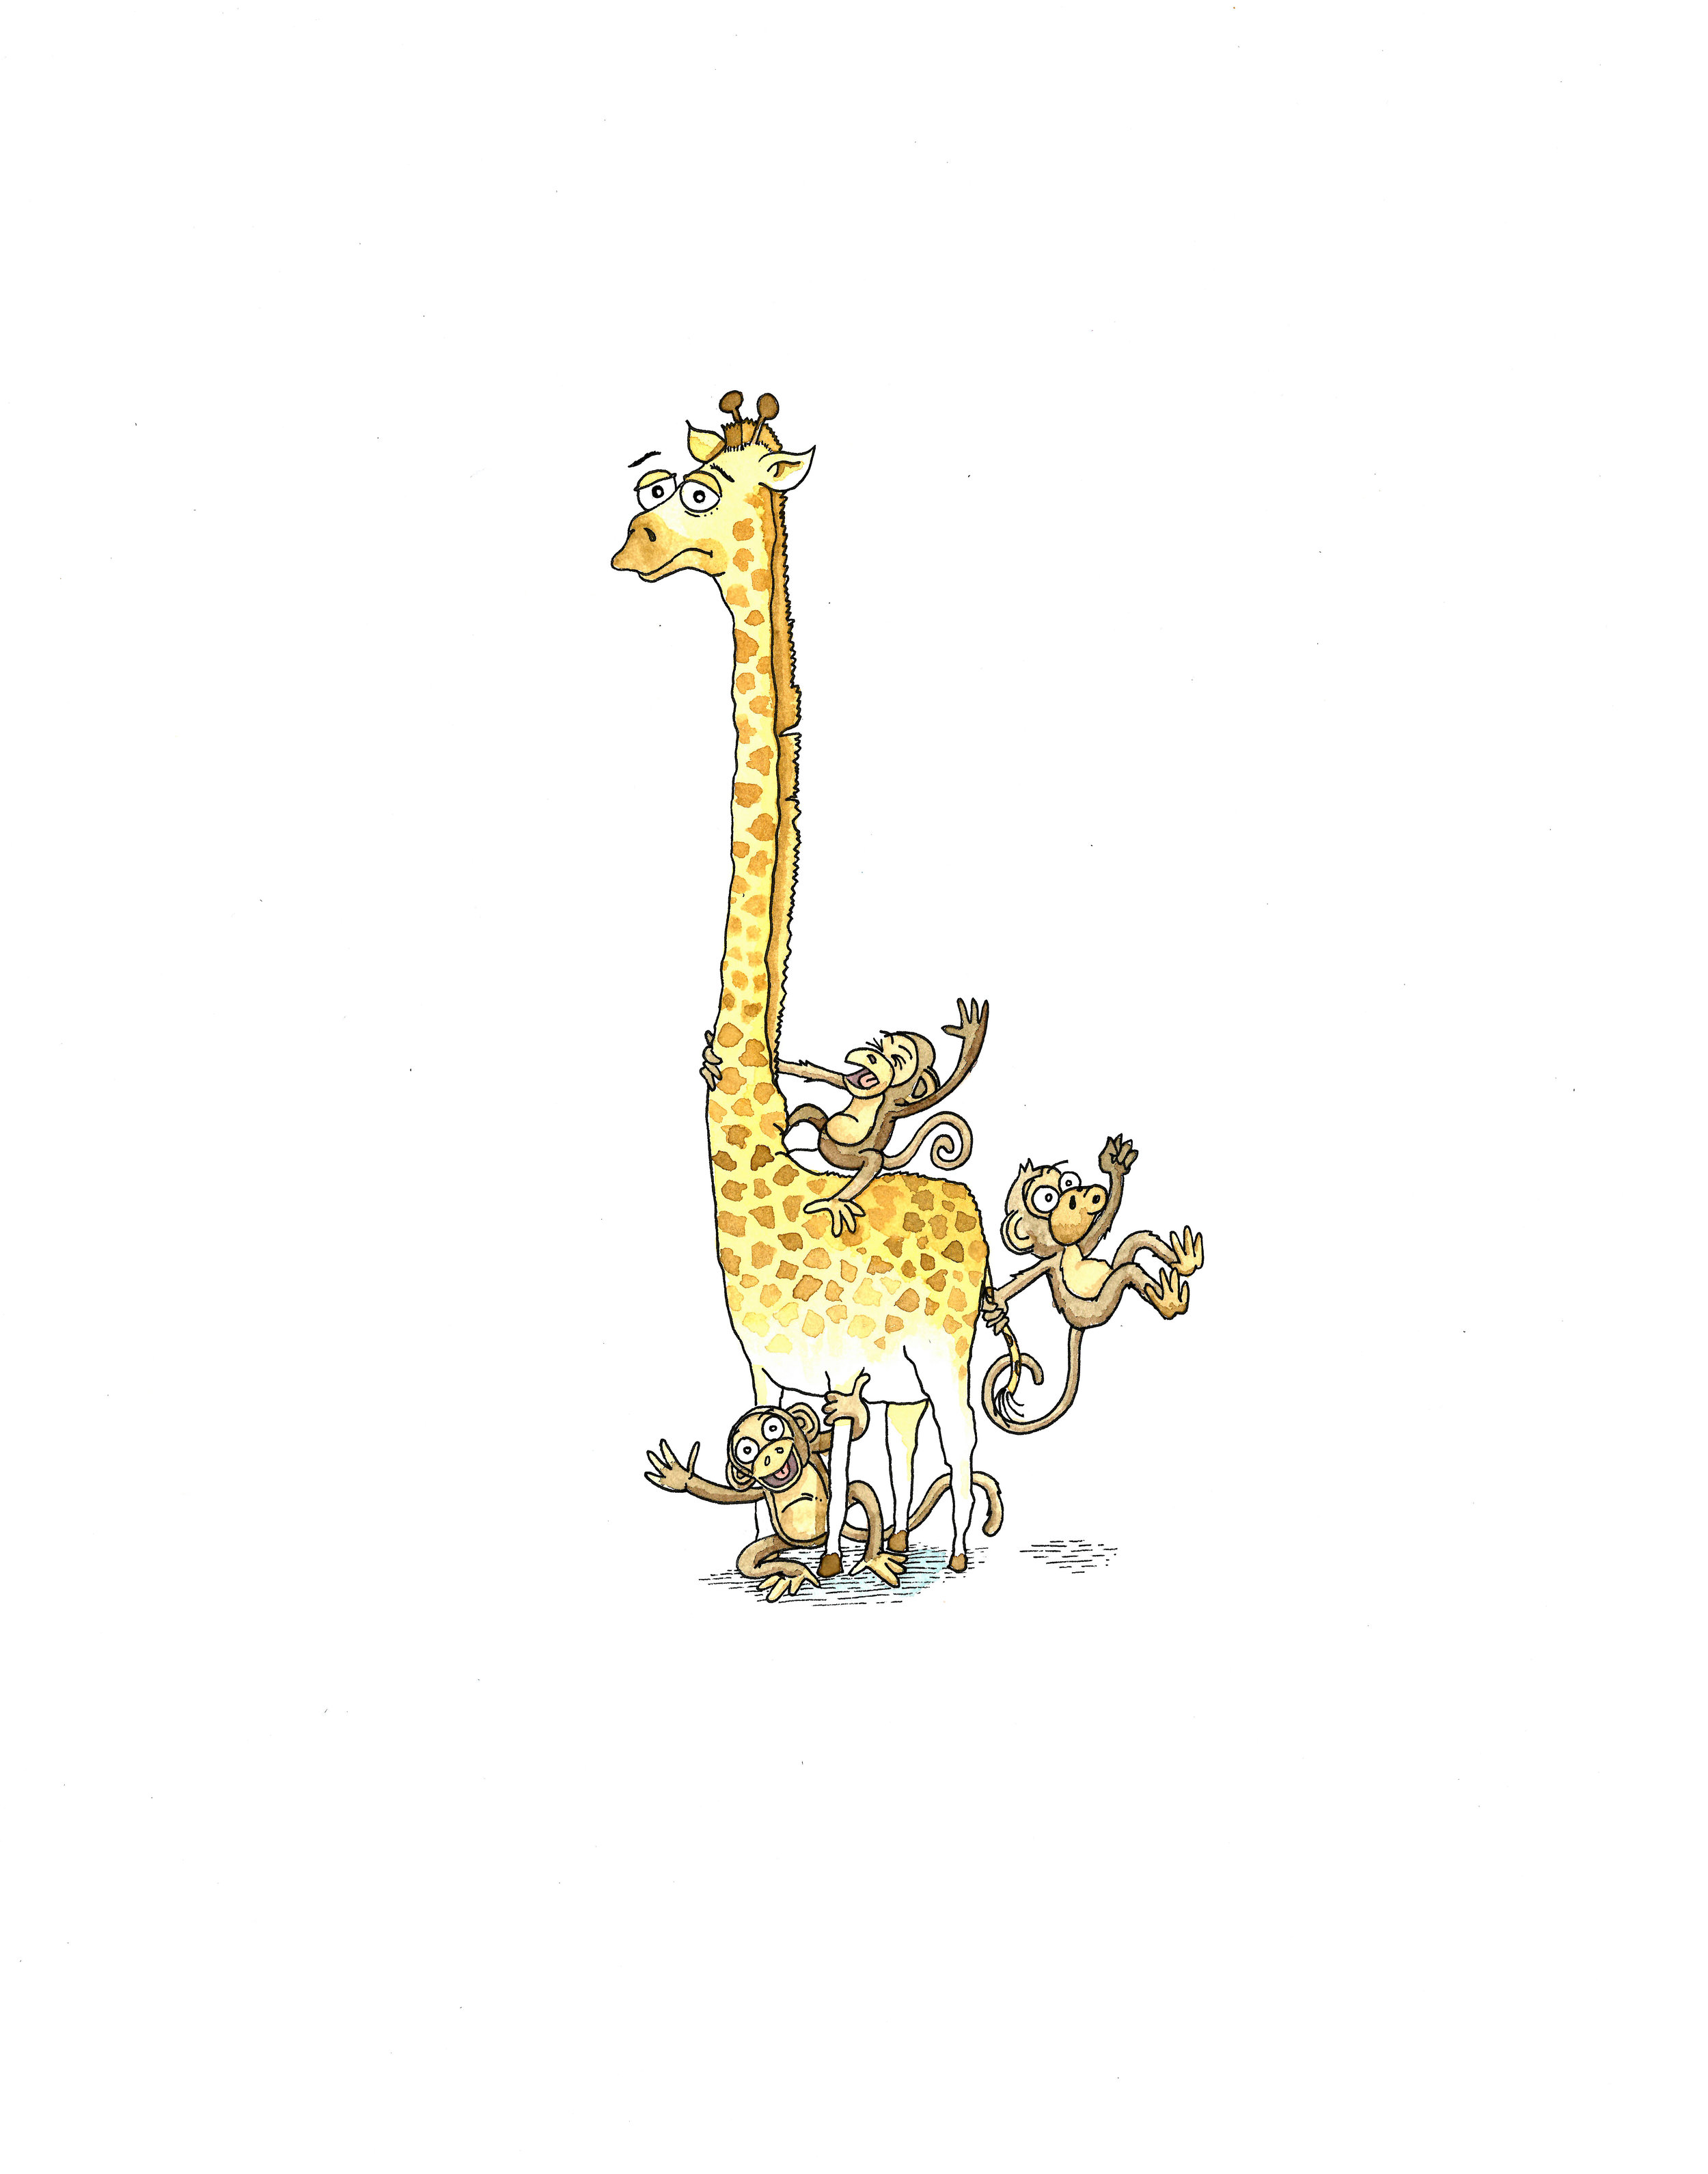 Jungle Jim the Giraffe SCAN.jpg